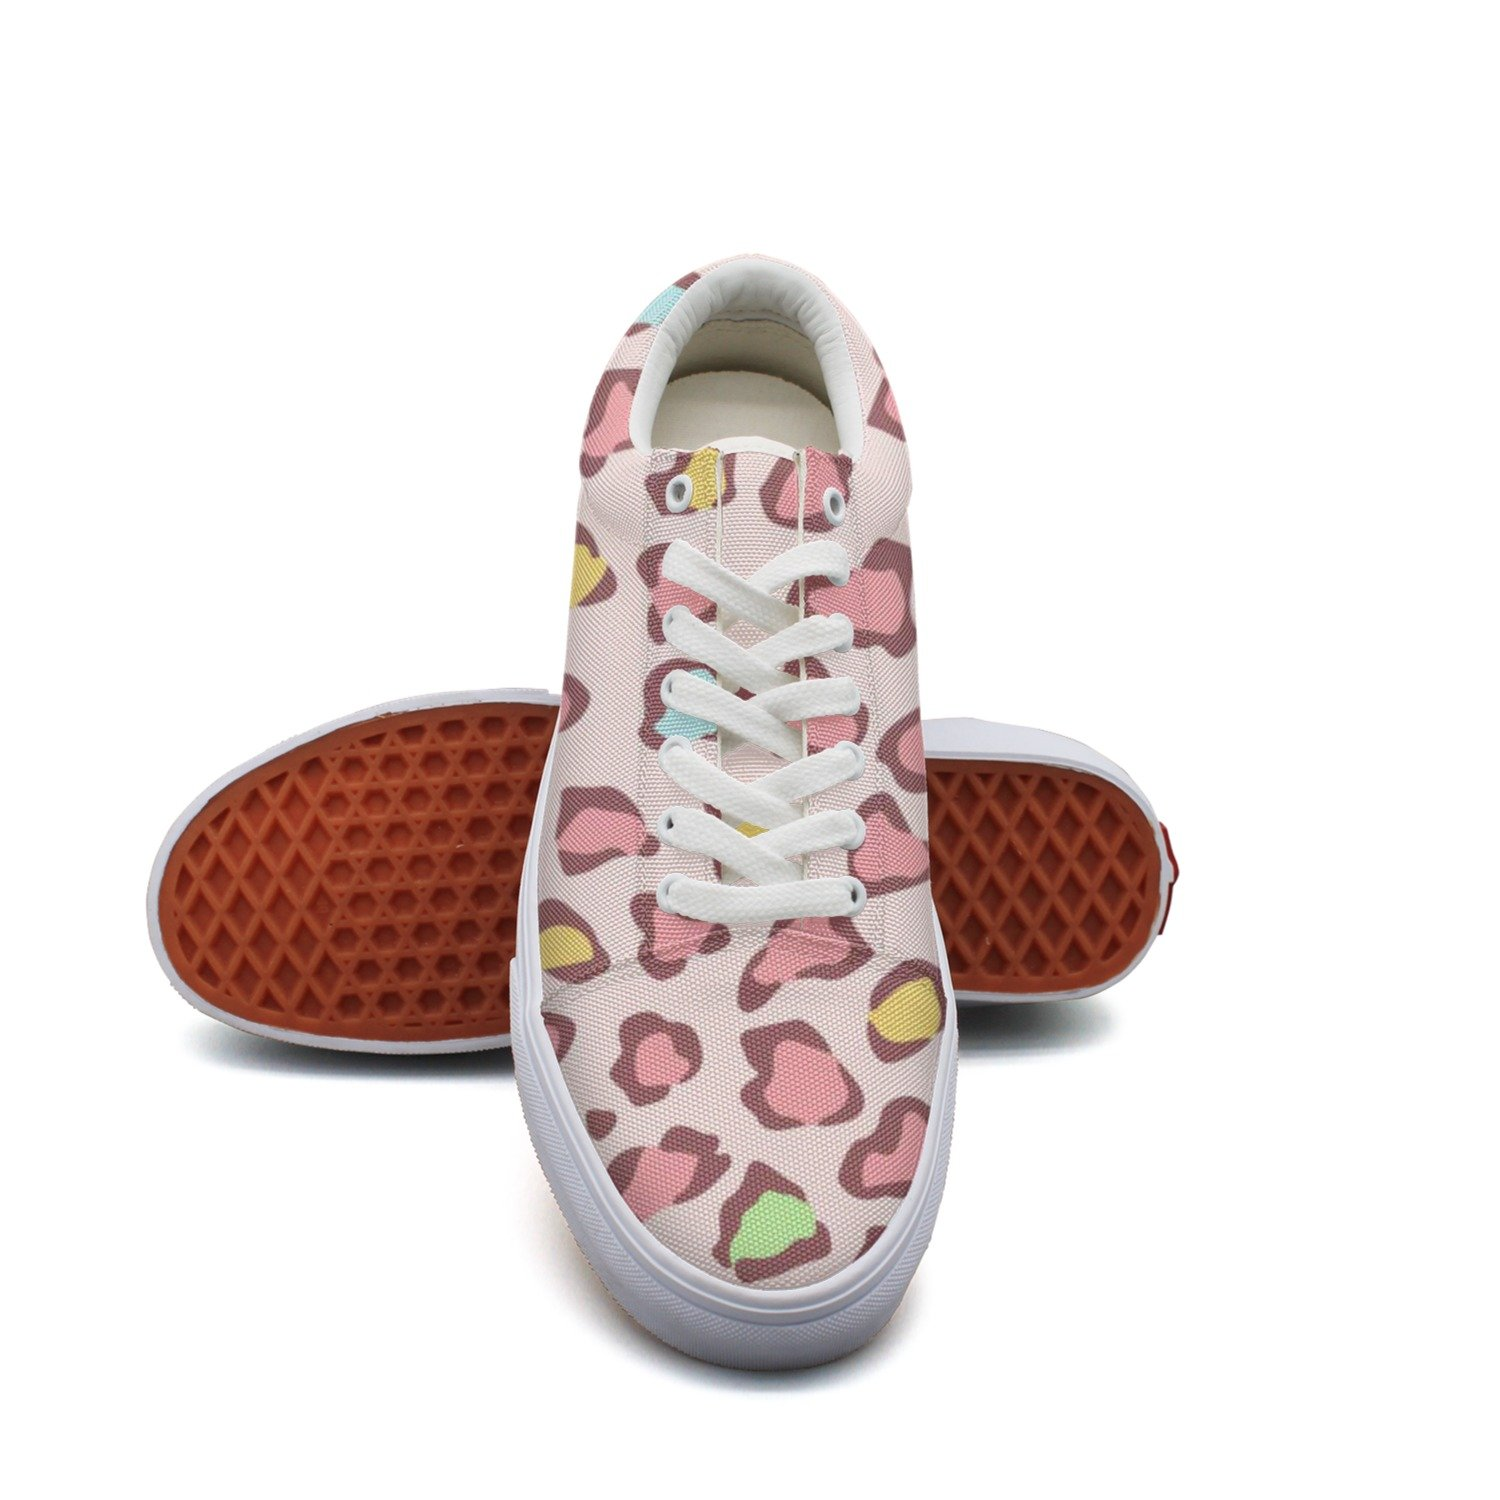 Multi Color Giraffe Print Fashion Canvas Sneaker Shoes For Womns 3D Printed Low Top Running Shoes